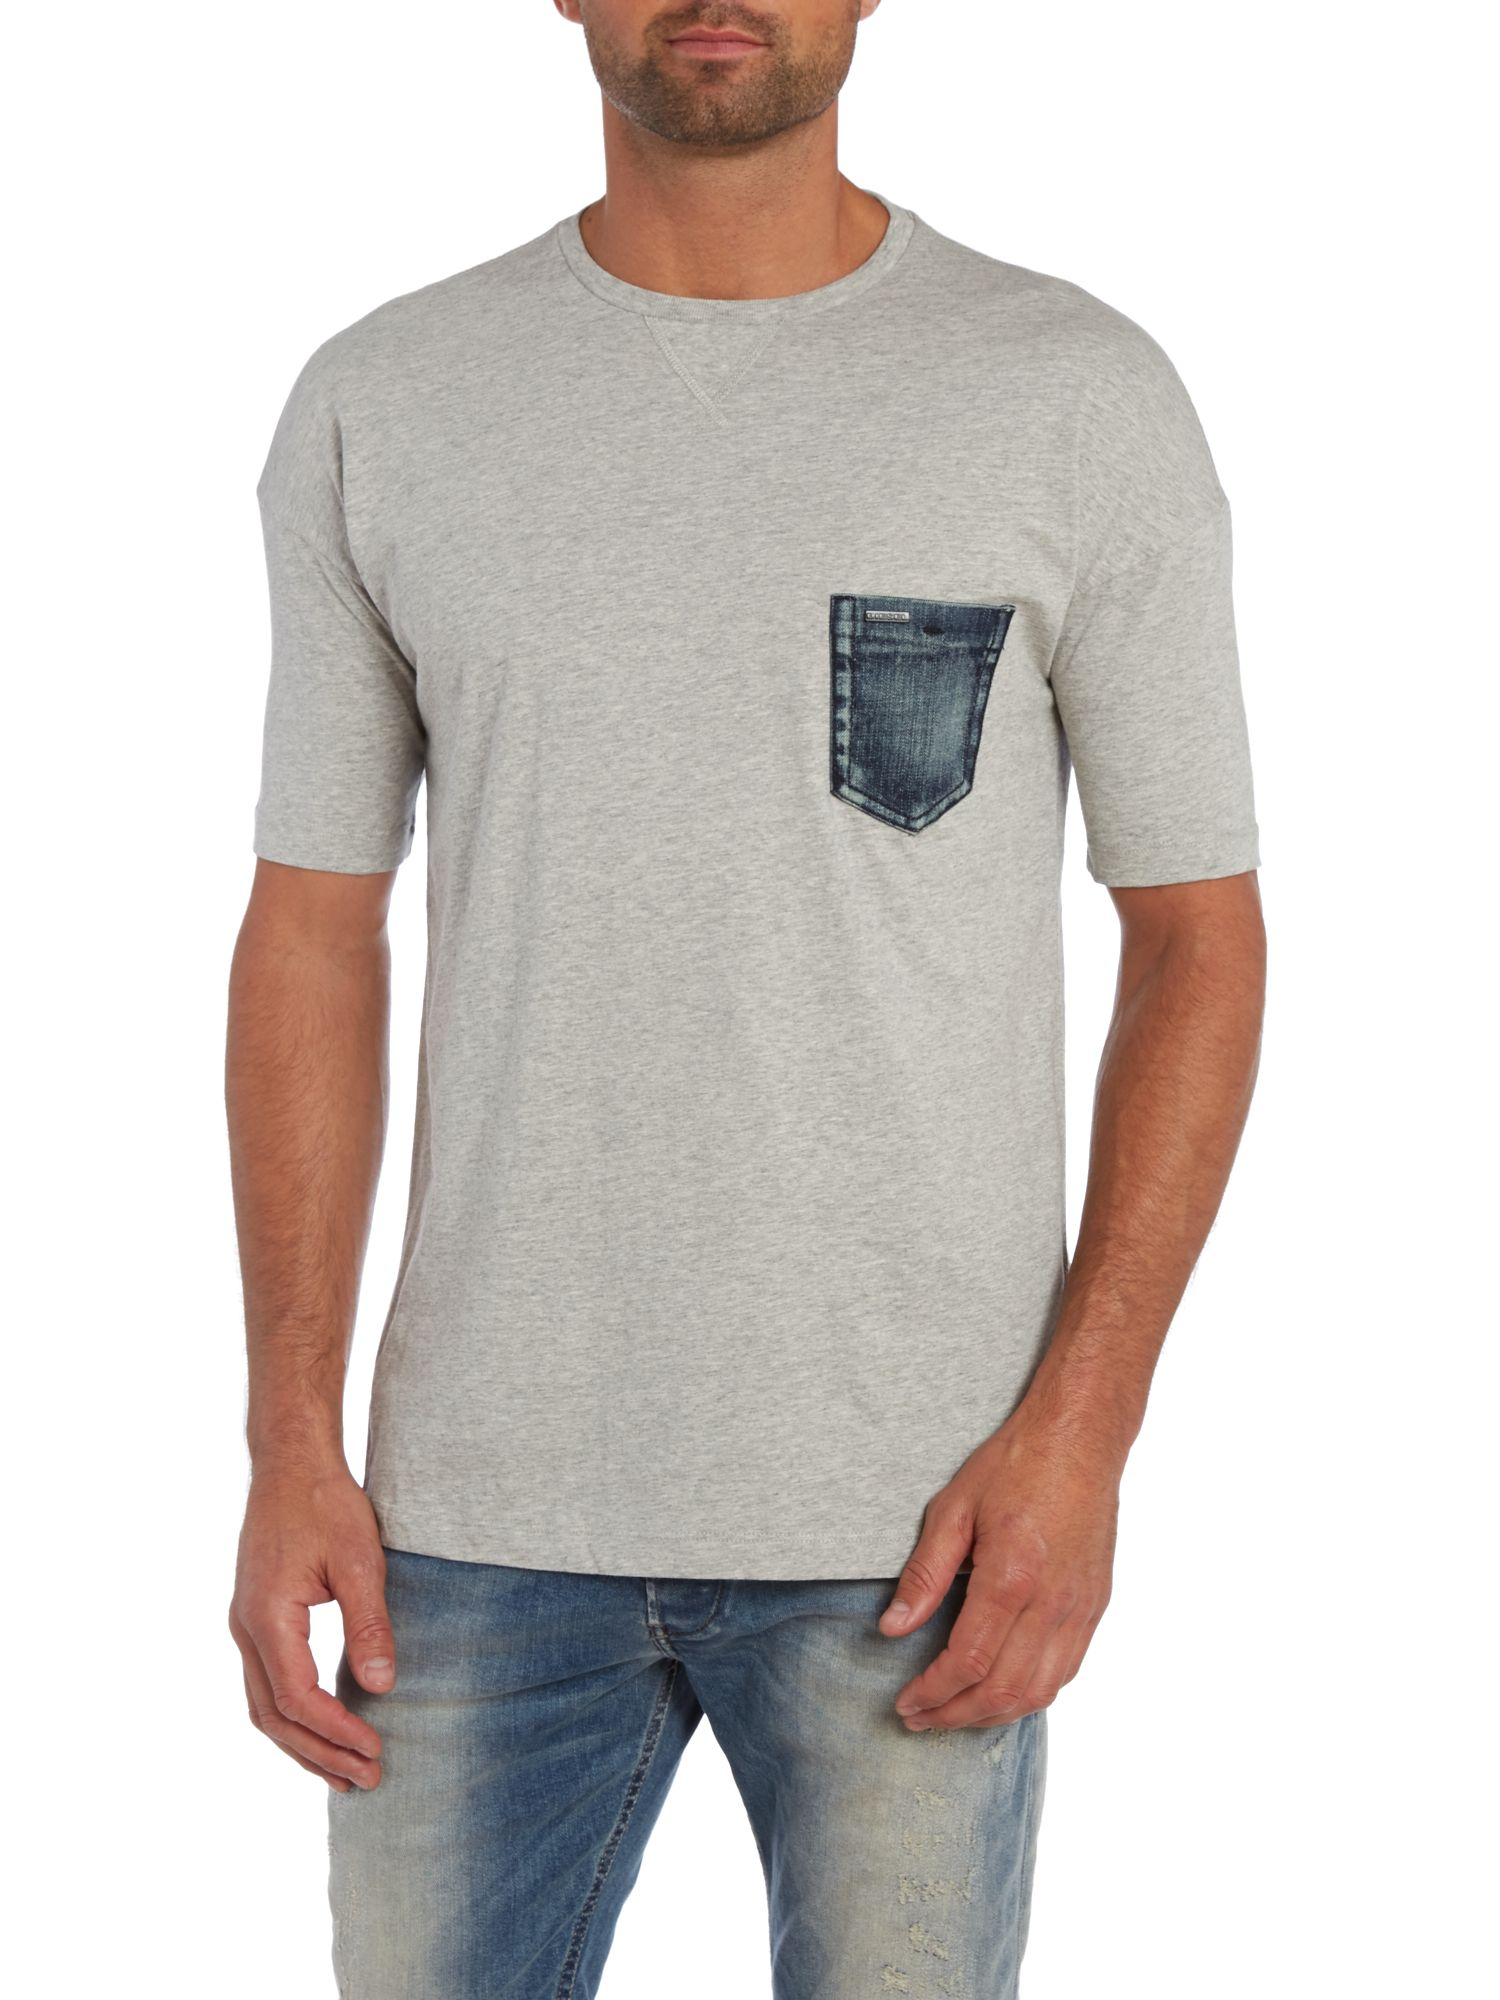 Denim pocket t shirt